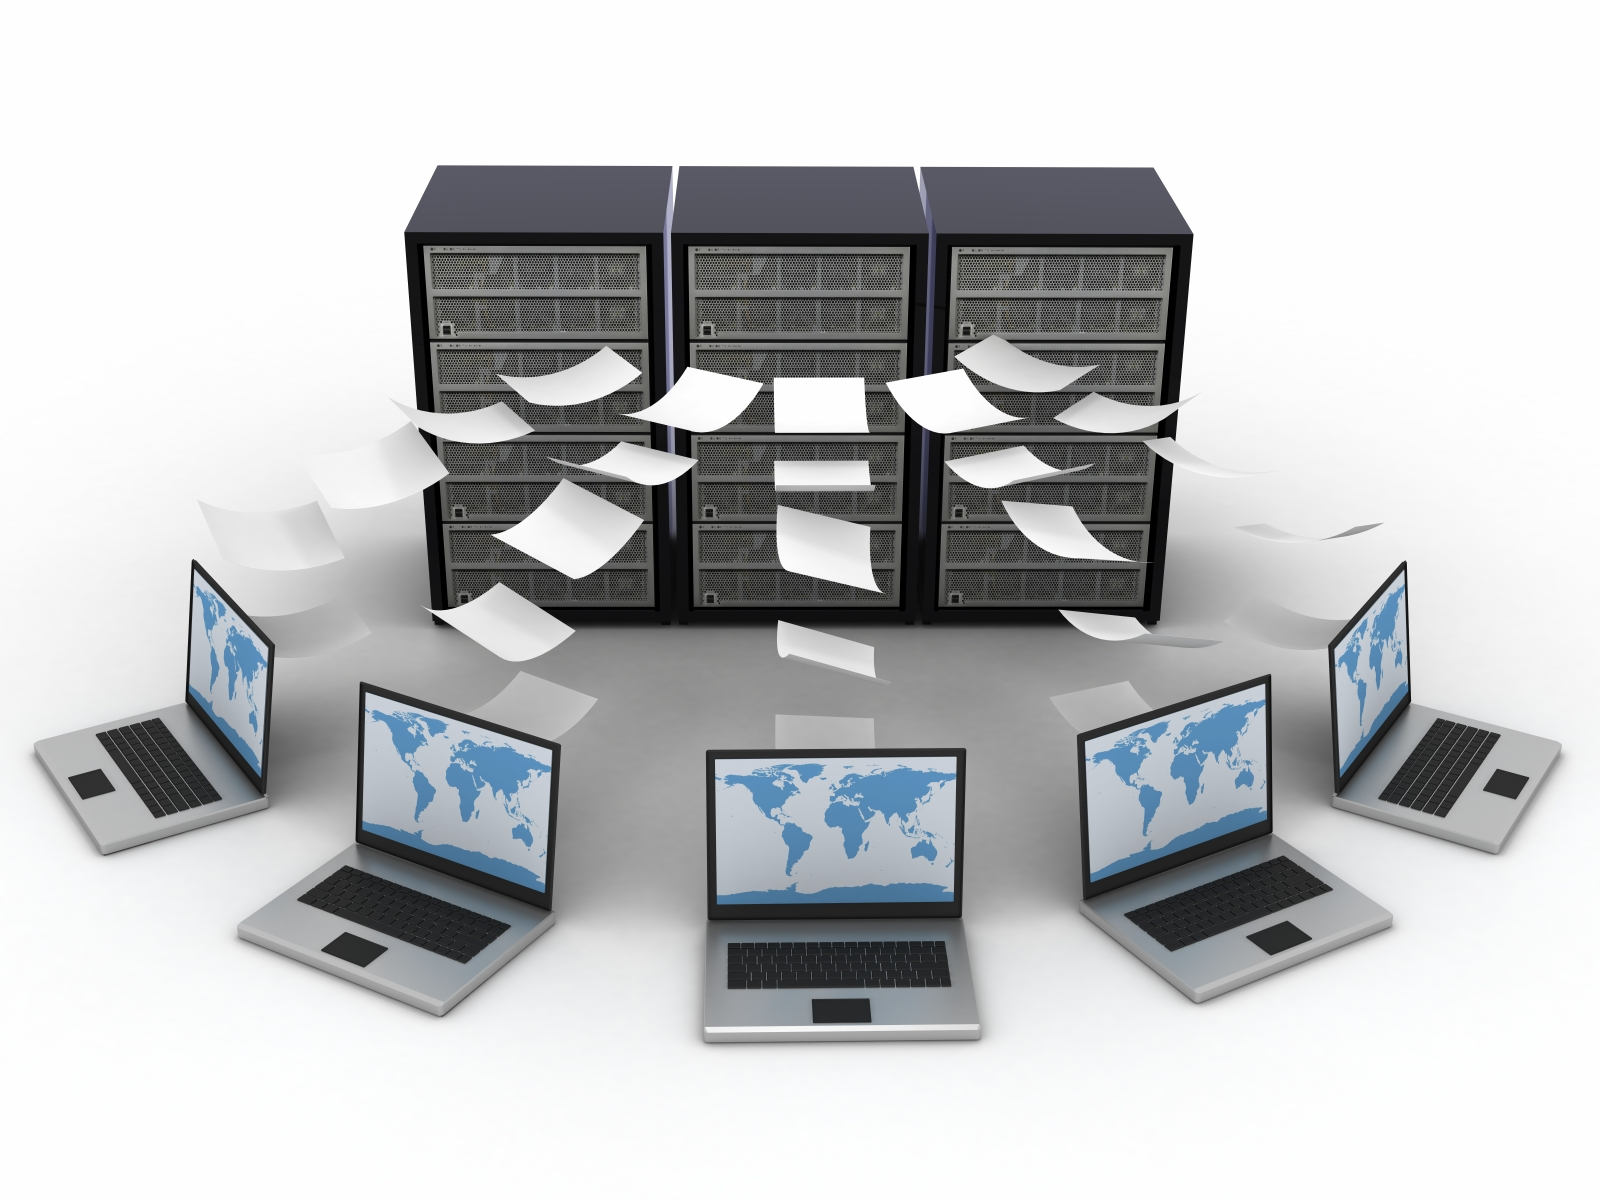 Data-backup-solutions-pinnacle-computer-services-evansville-in.jpg